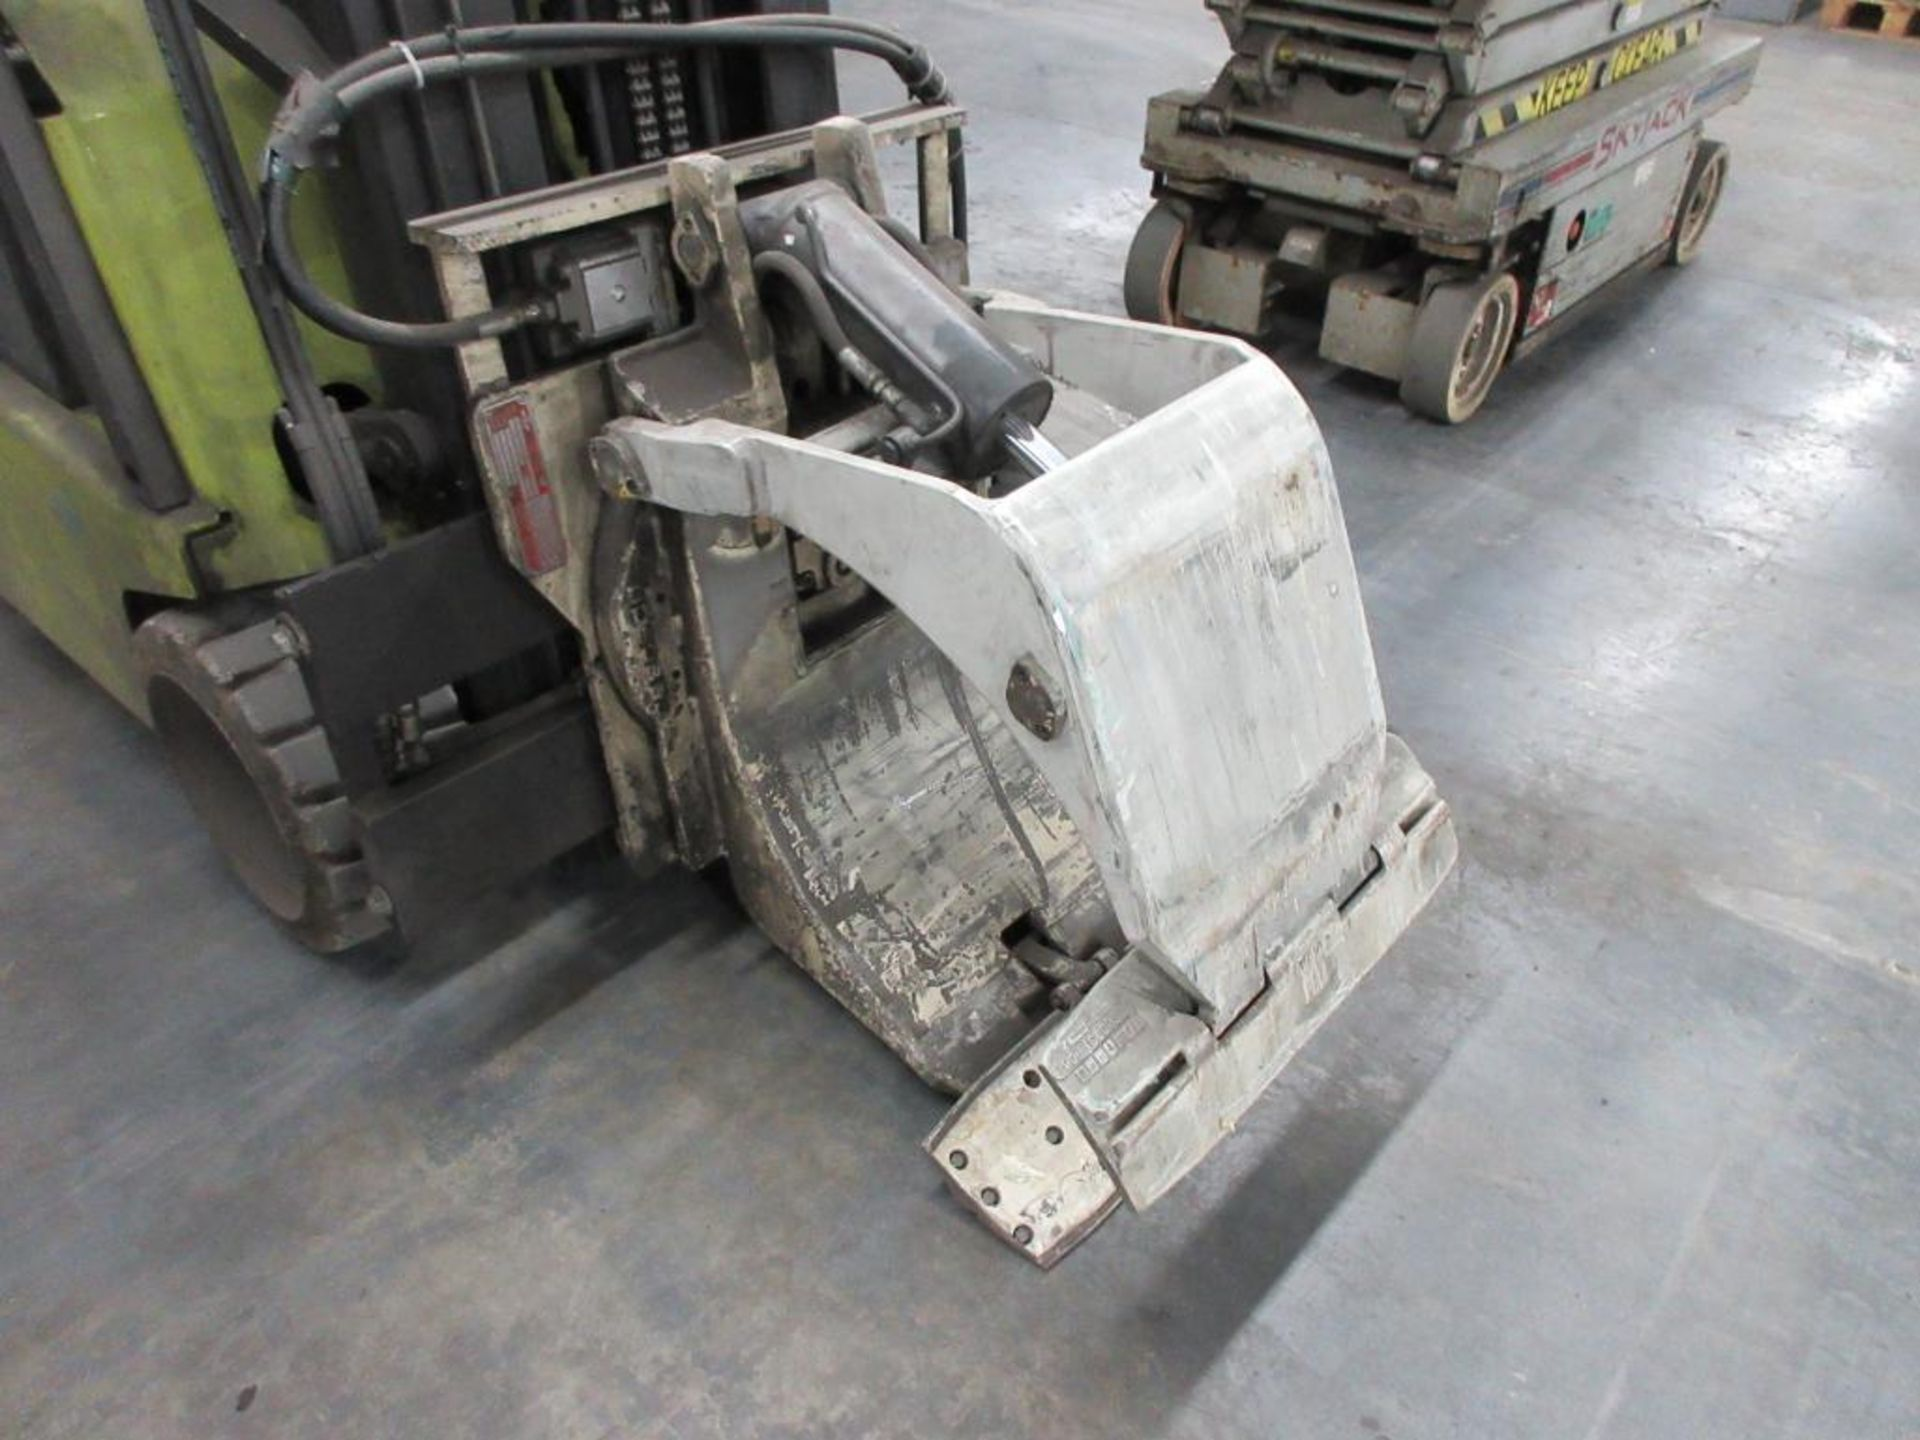 """Clark 4,500 lb capacity, 3 wheel electric clamp forklift, model TM25, 3 stage mast, 186"""" lift height - Image 8 of 10"""